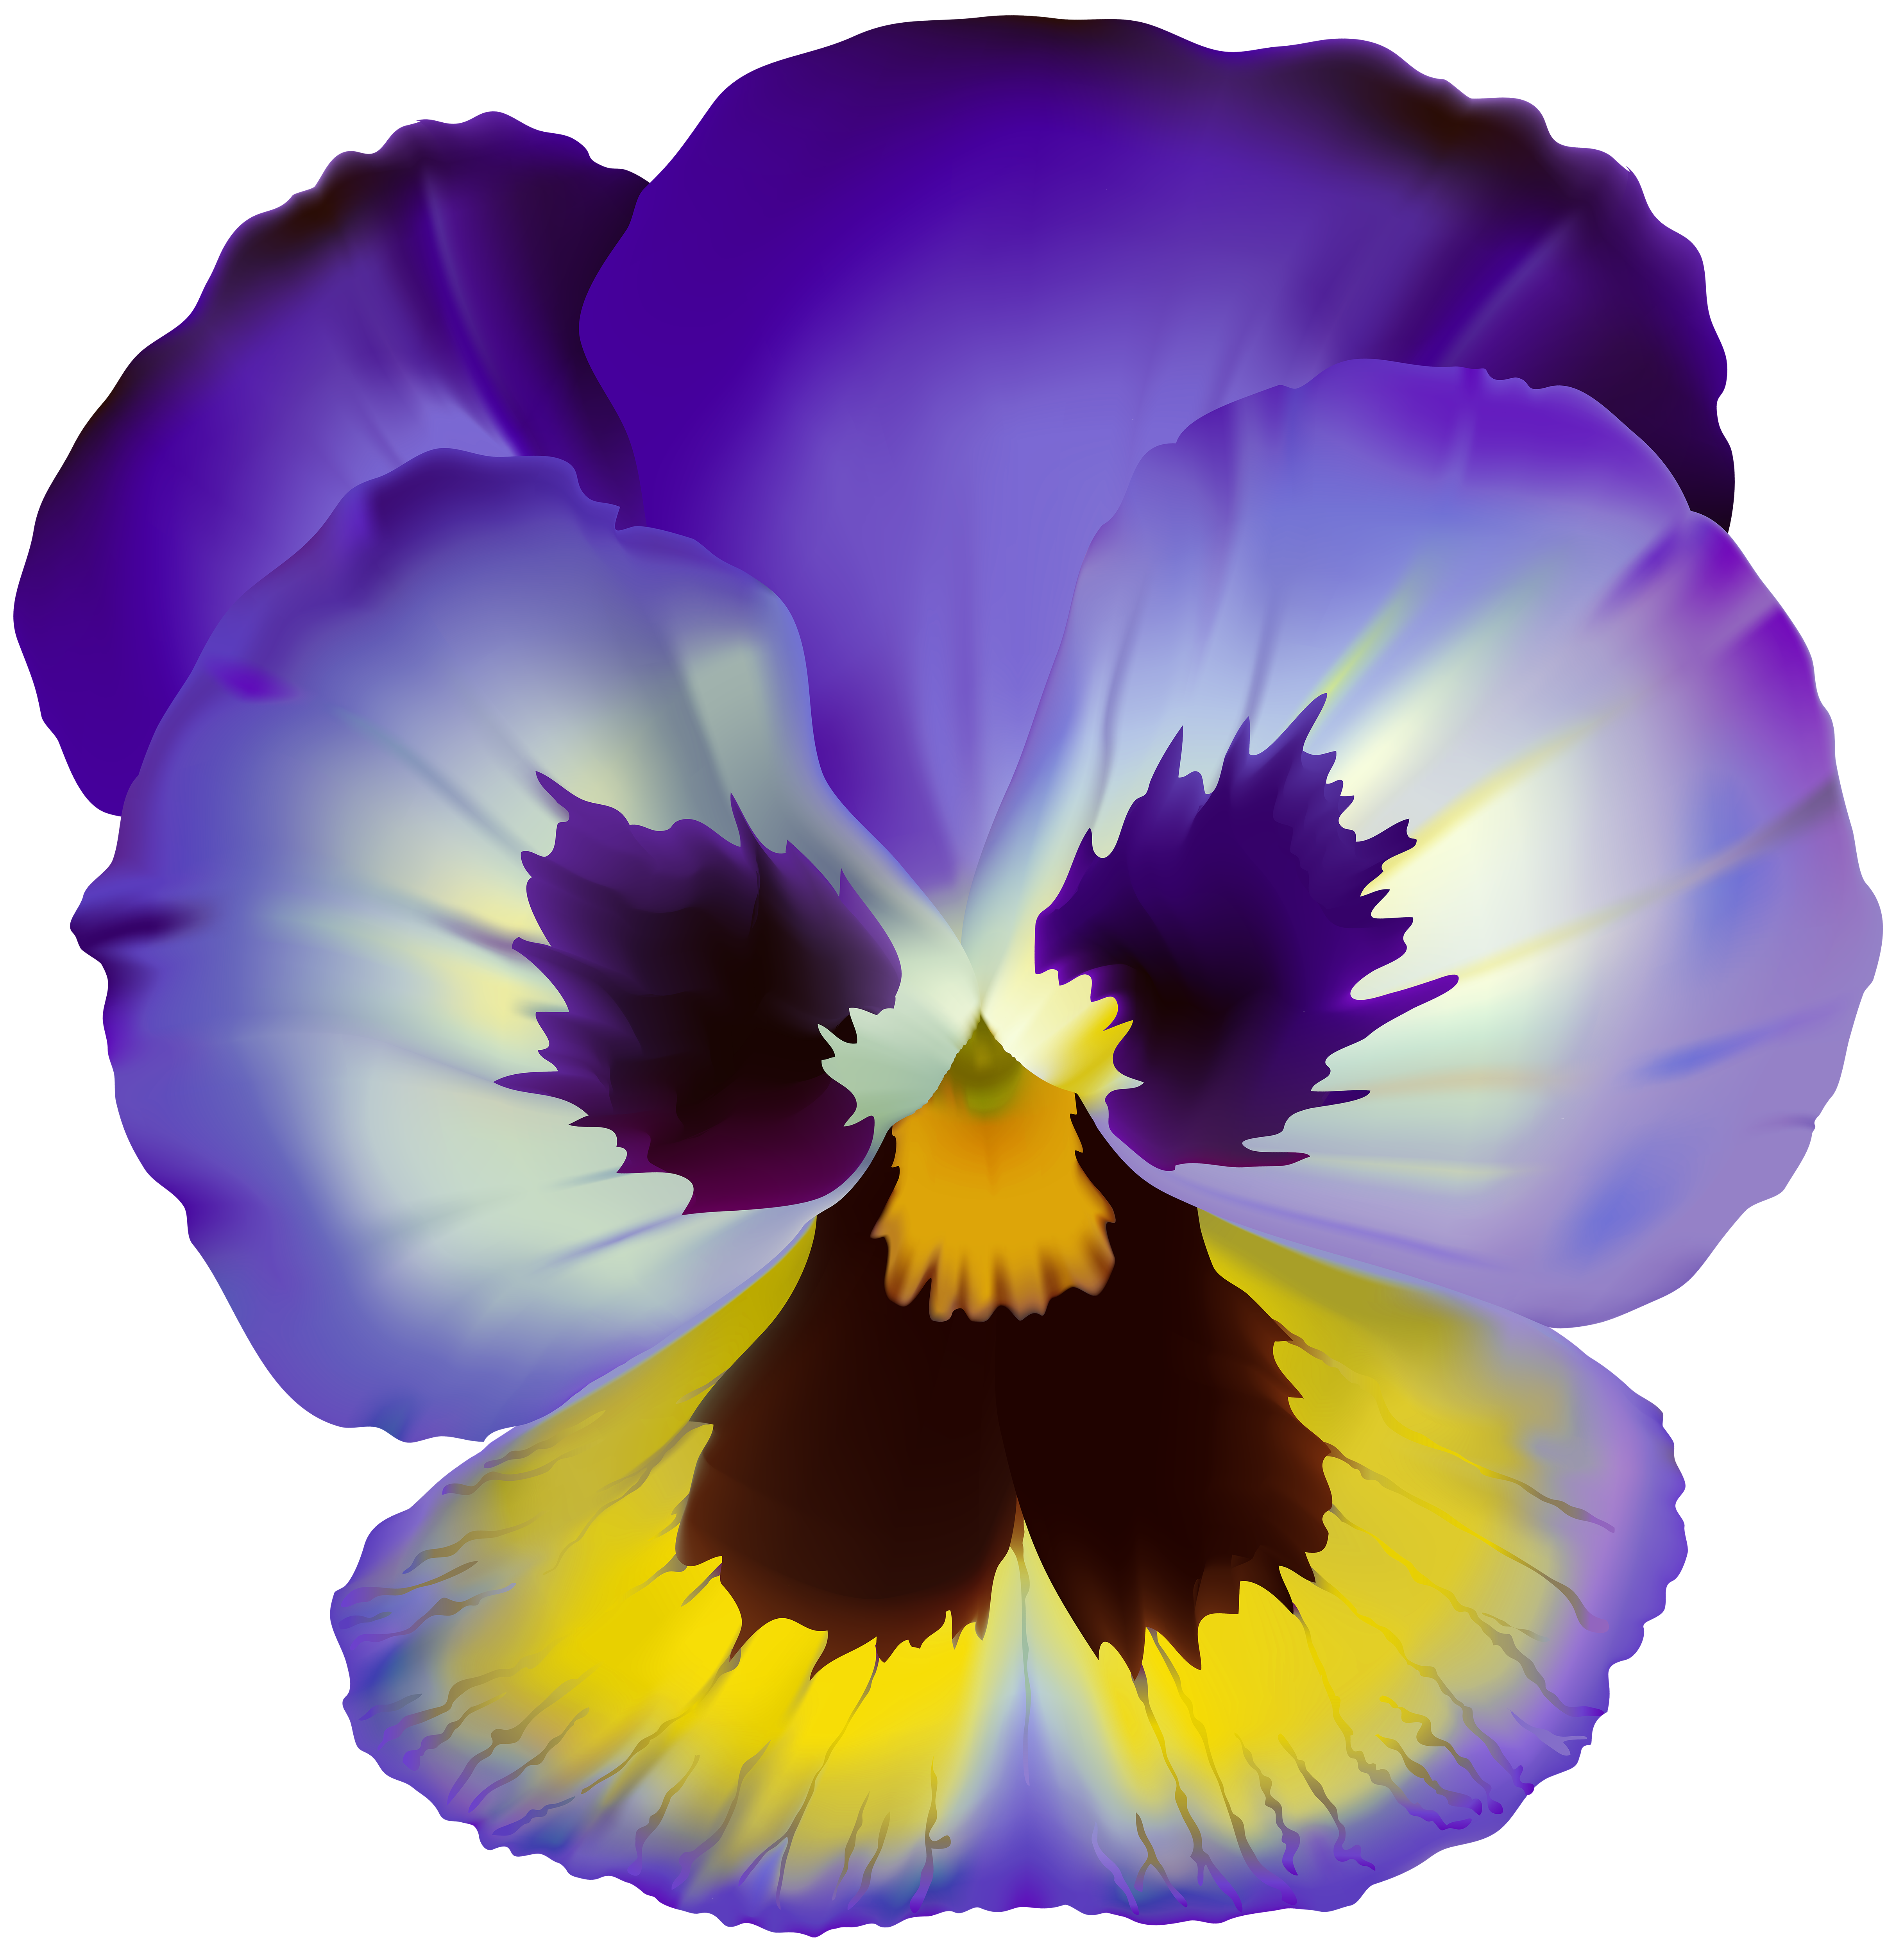 Violet flower clipart free picture stock Violet Flower Transparent Clip Art | Gallery Yopriceville - High ... picture stock